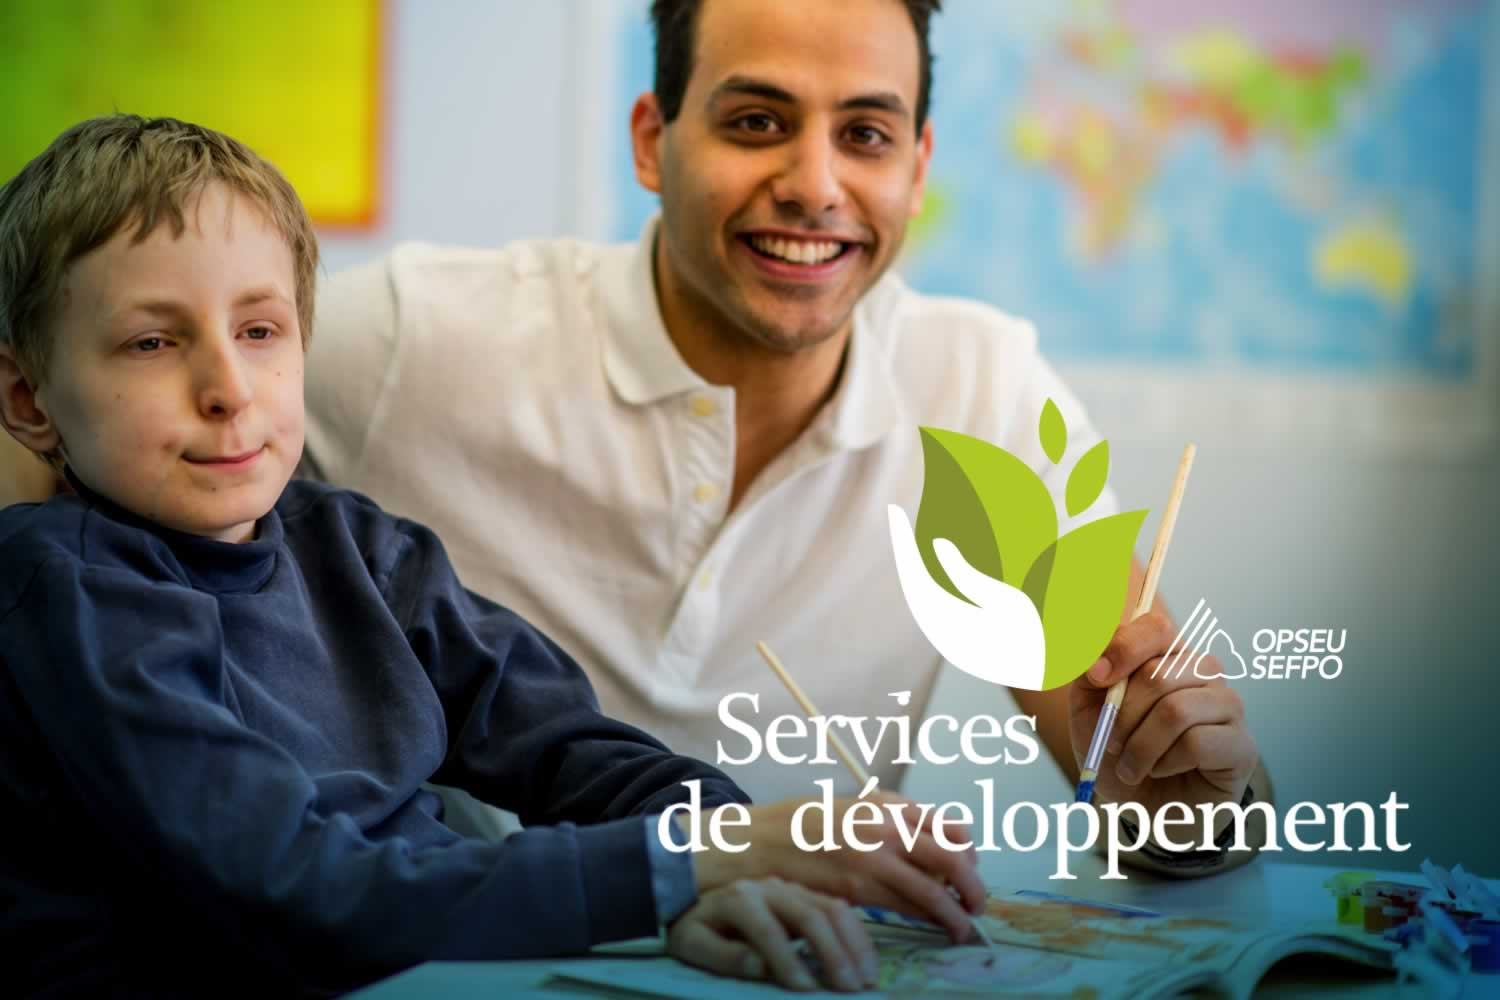 SEFPO Services de developpement